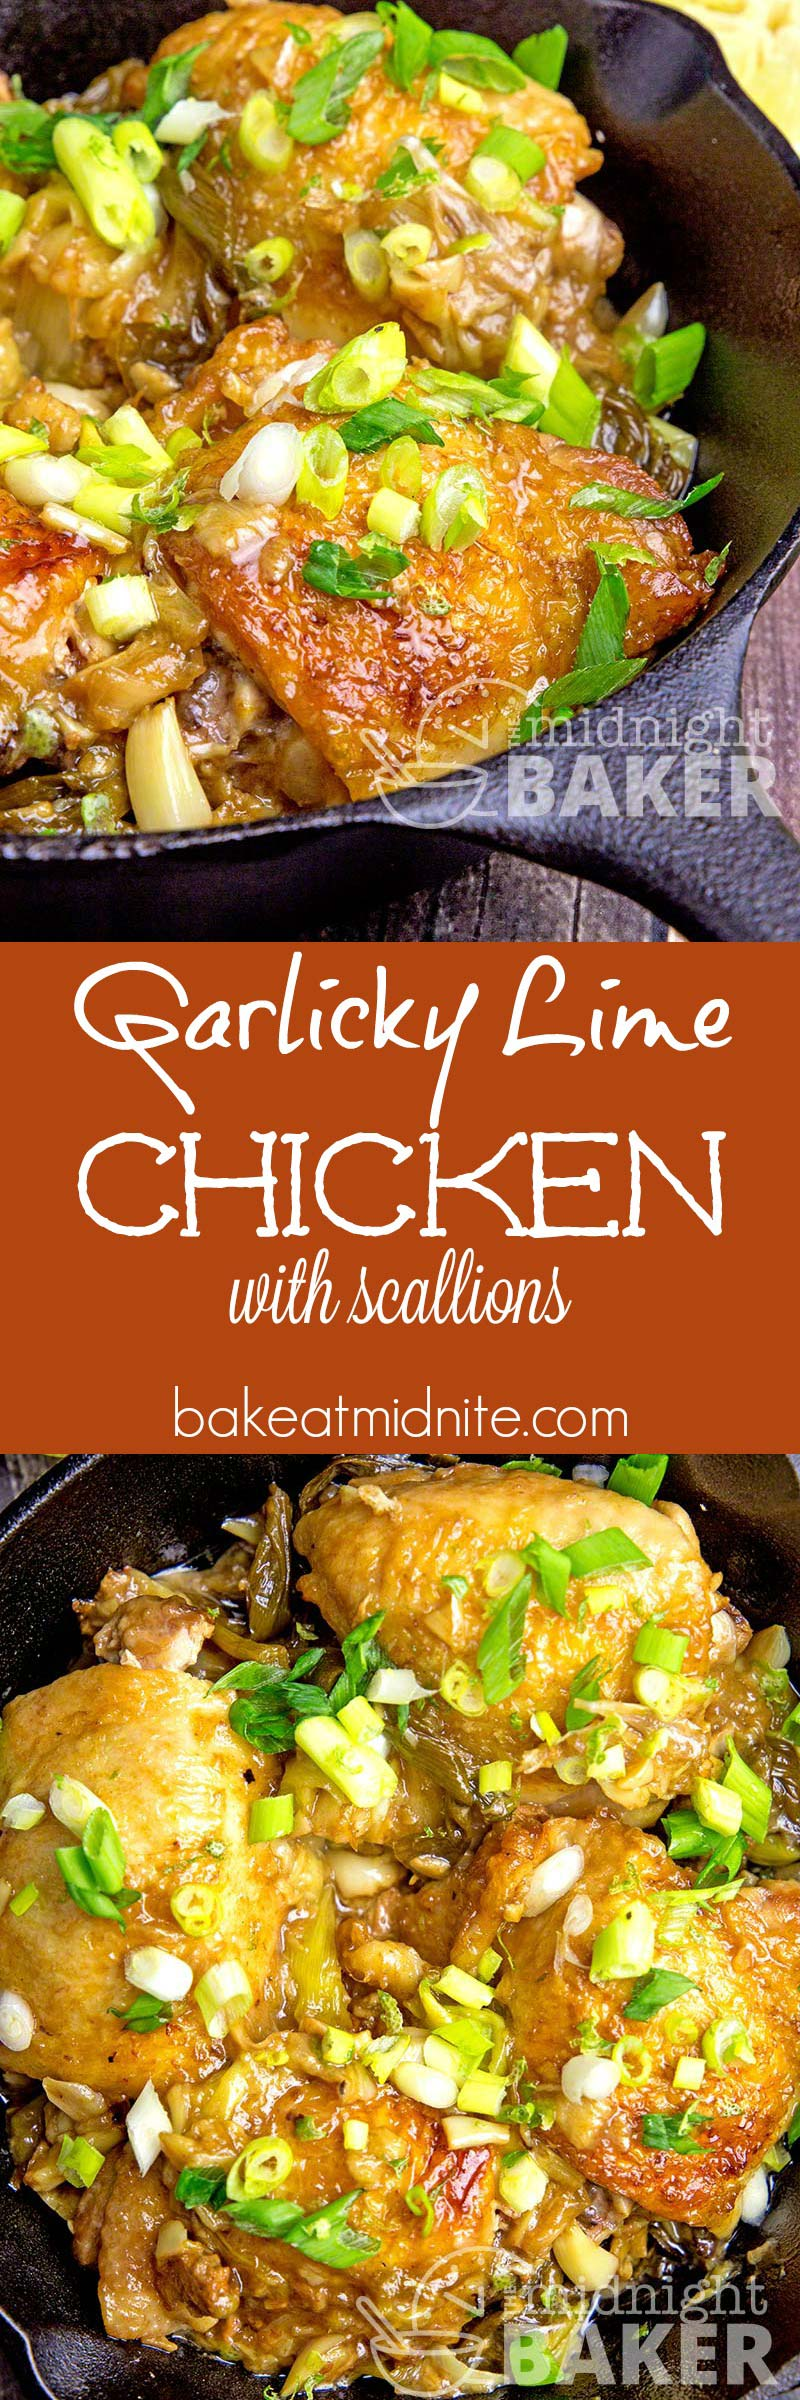 Quick and easy skillet chicken dinner with great garlic flavor with a hint of lime.